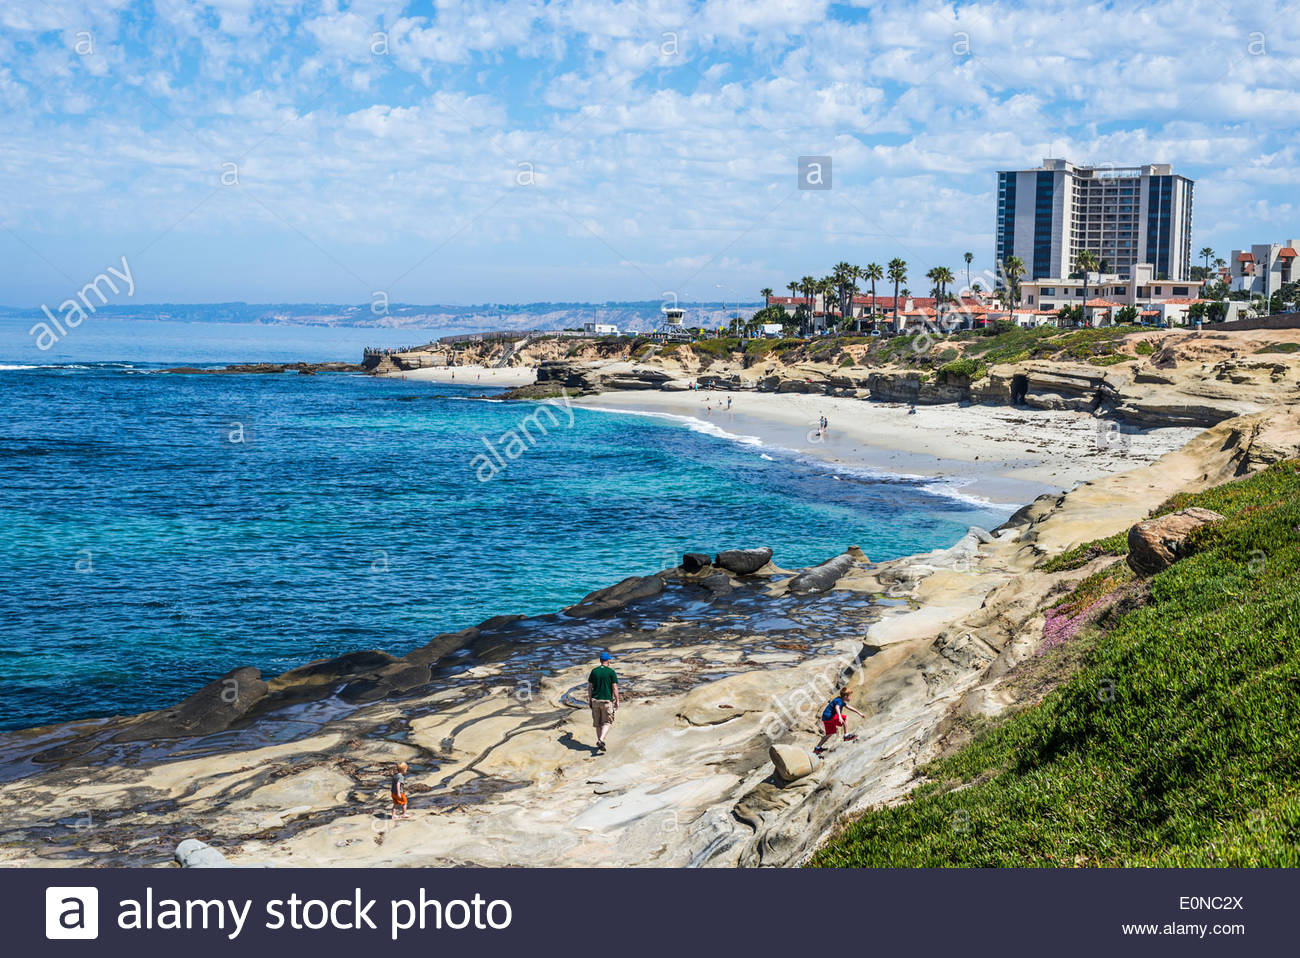 La Jolla Coastline And Wipeout Beach In The Background. La